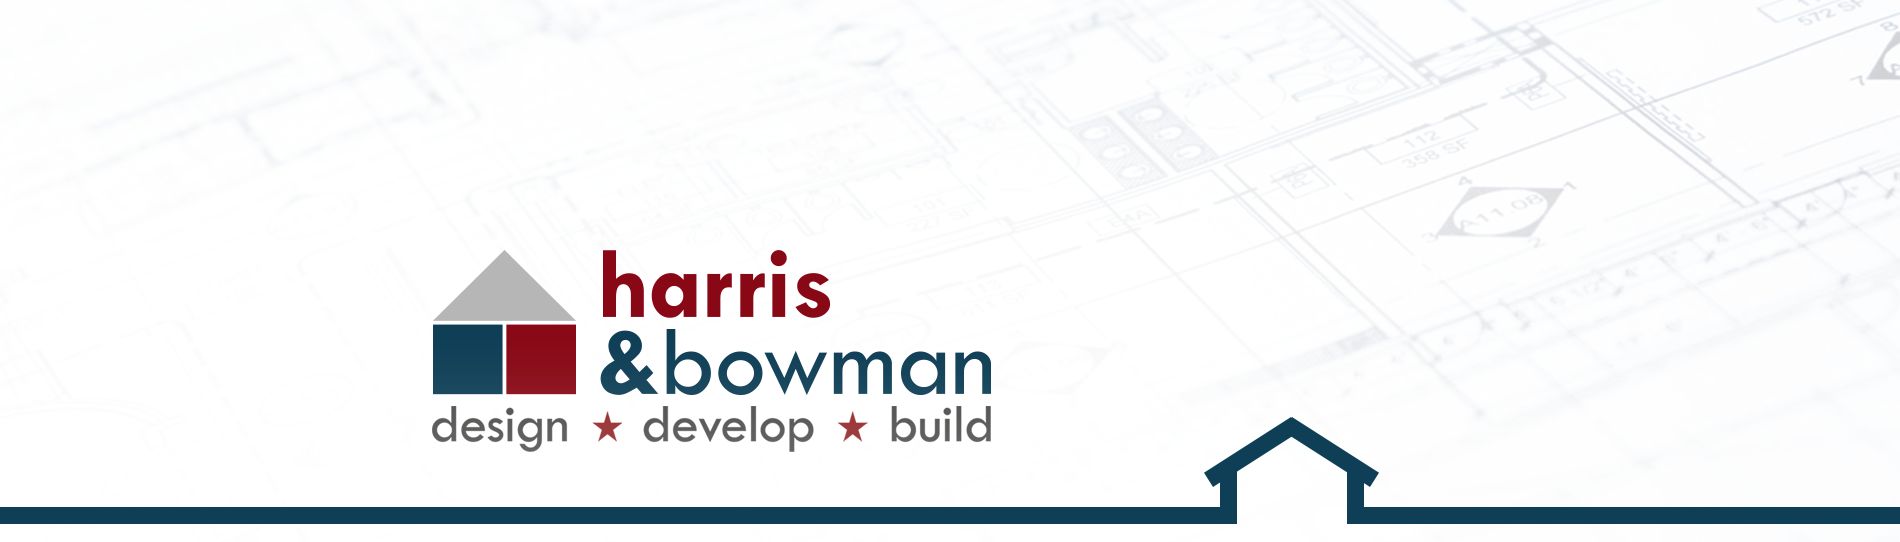 harris-and-bowman-home-page-slider-bg